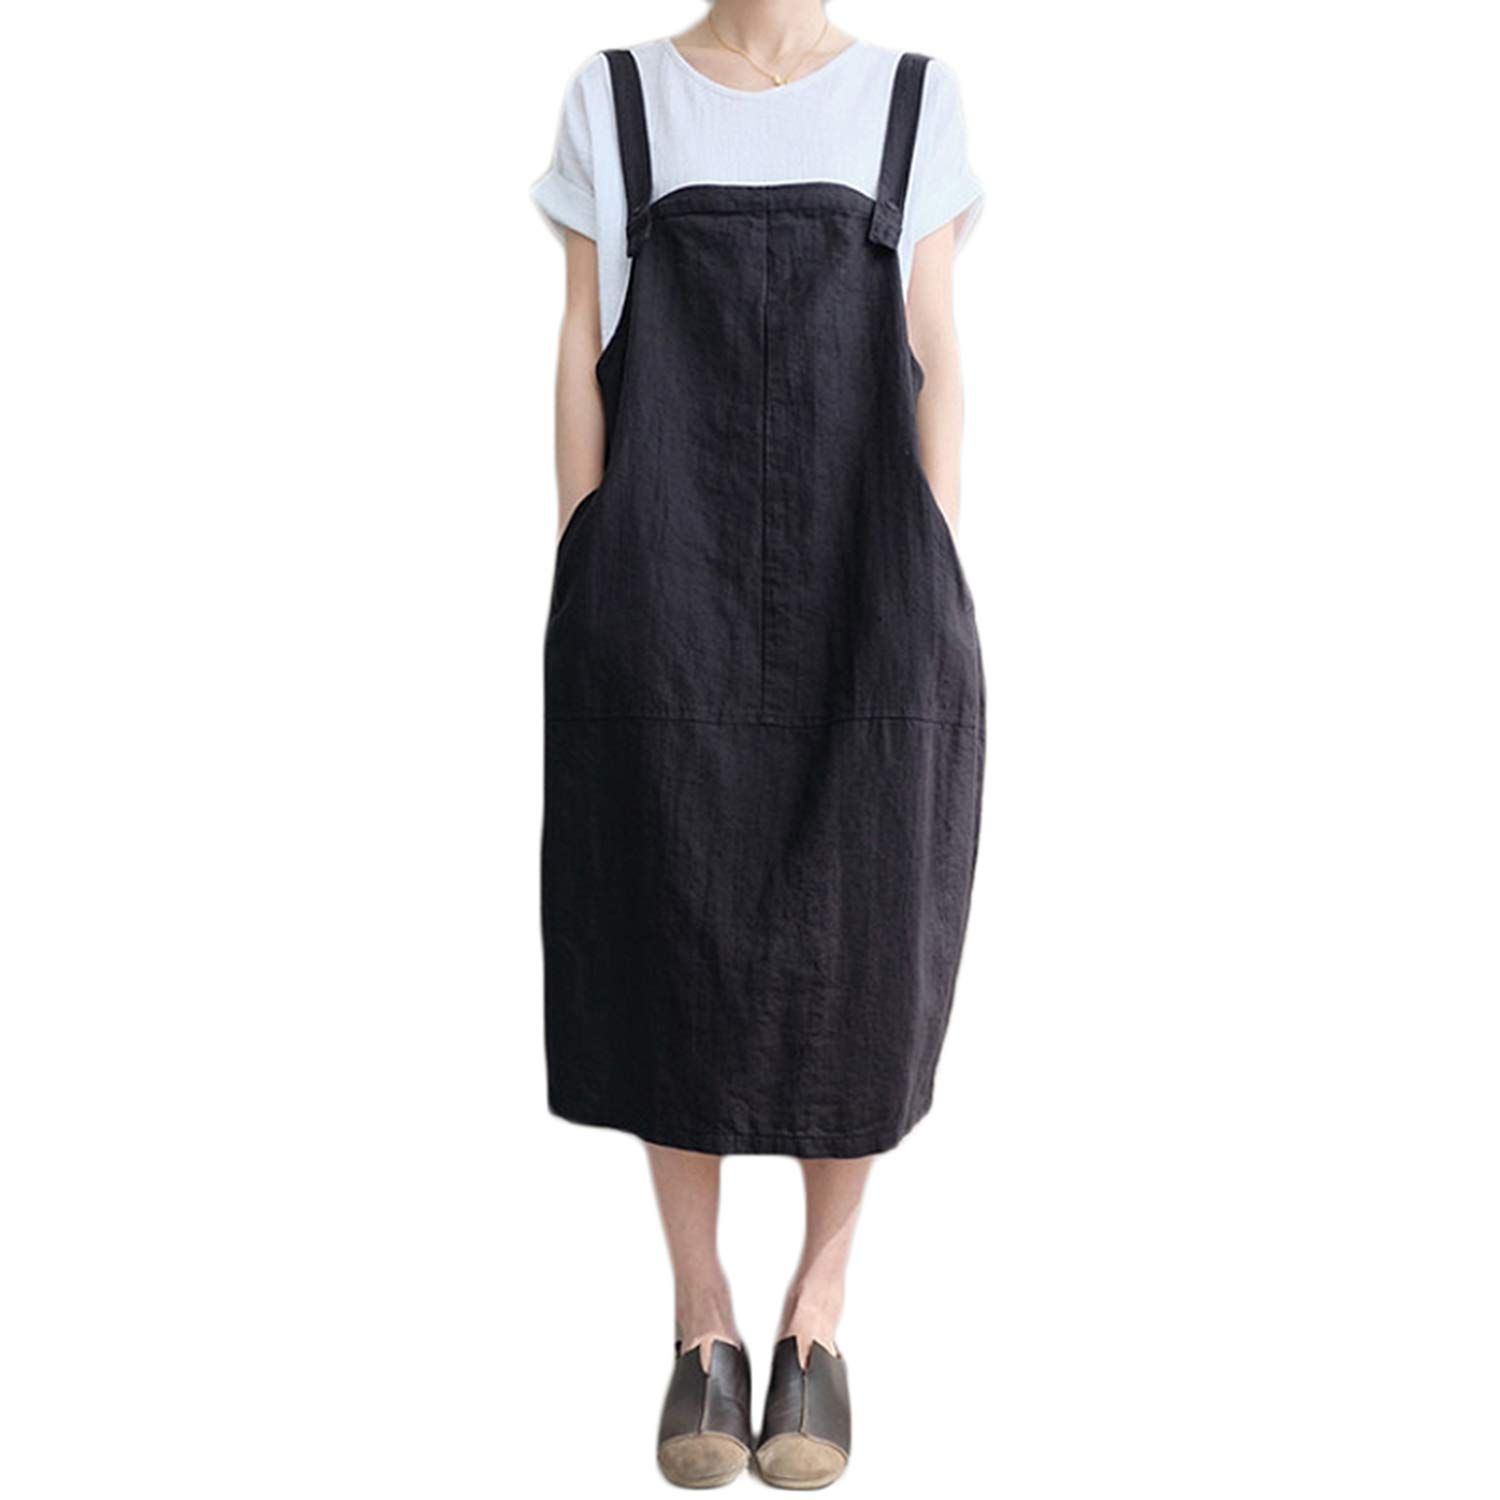 39ecf4563ef5 Top1  FLORHO Women Casual Spaghetti Strap Overalls Loose Jumper Dress with  Side Pocket